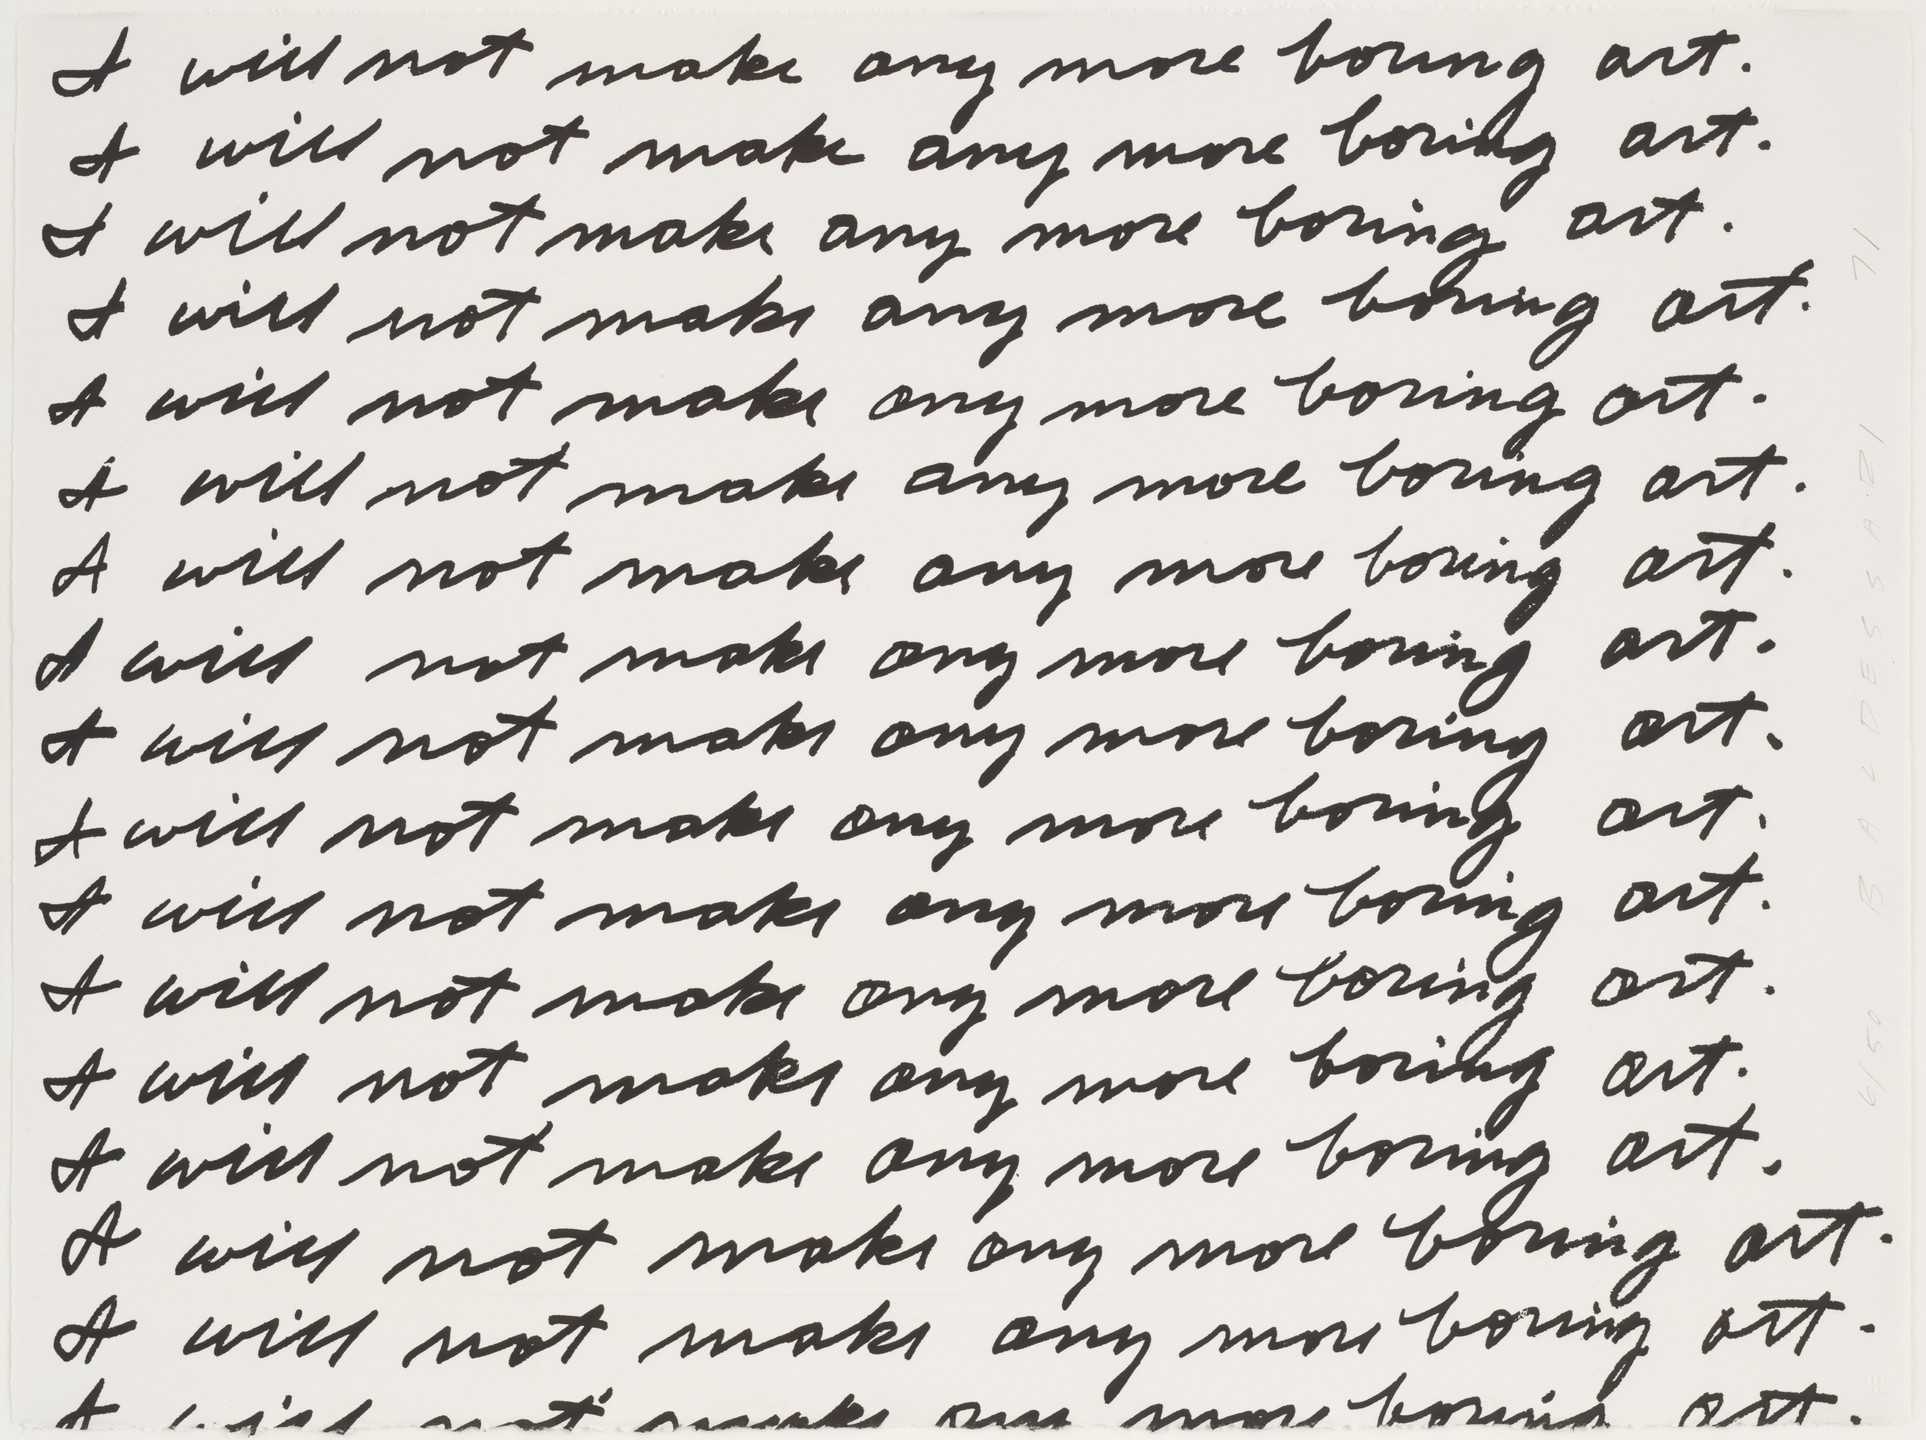 John Baldessari. I Will Not Make Any More Boring Art. 1971